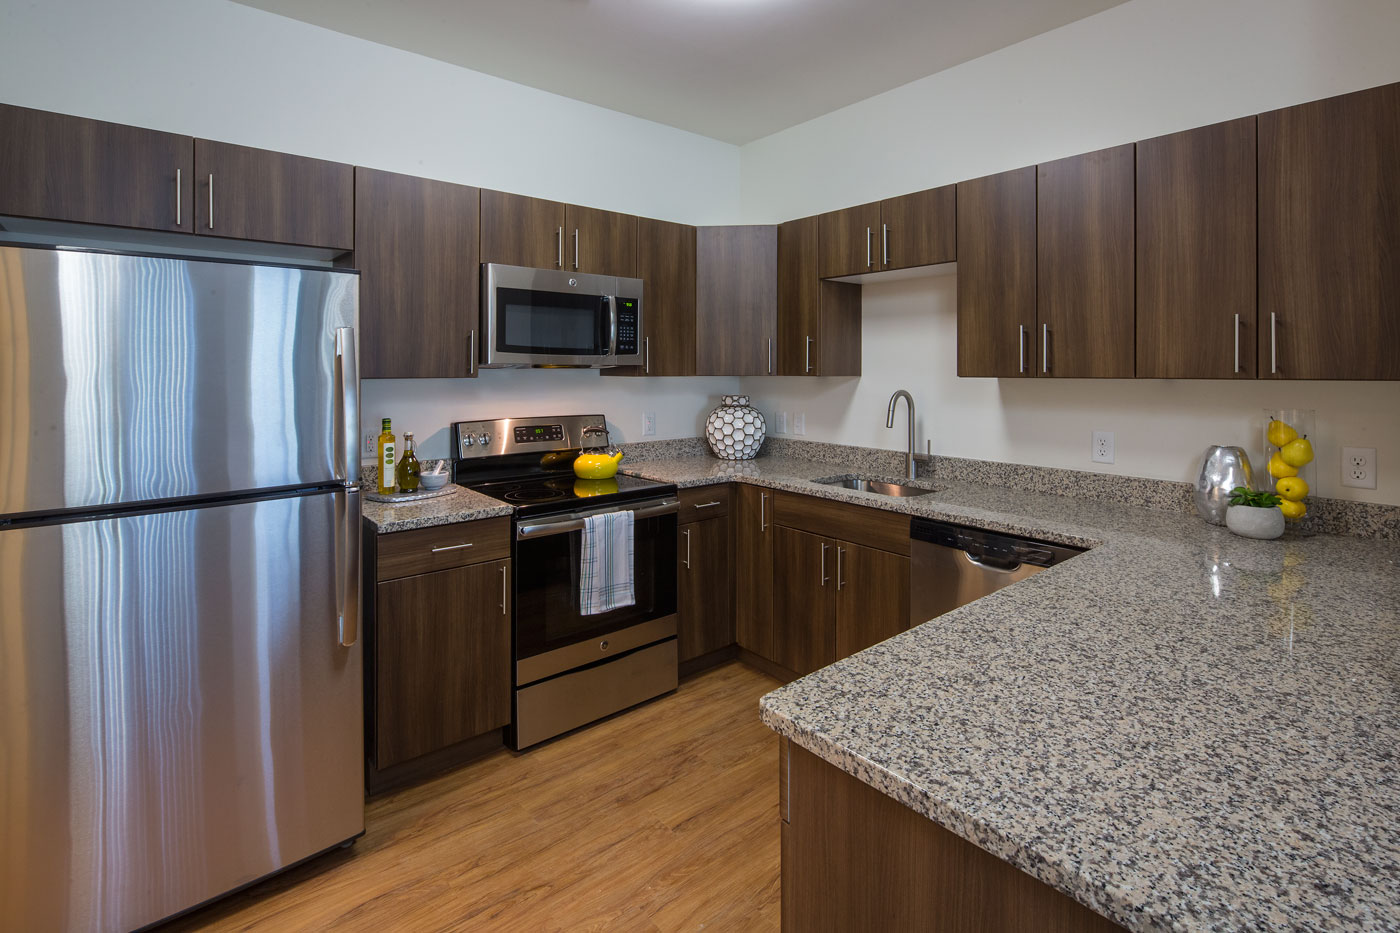 large kitchen with contemporary cabinetry, granite countertops, stainless steel appliances and plank flooring - newark de luxury apartmentsok a gourmet meal in the modern kitchens of our Christiana DE apartments